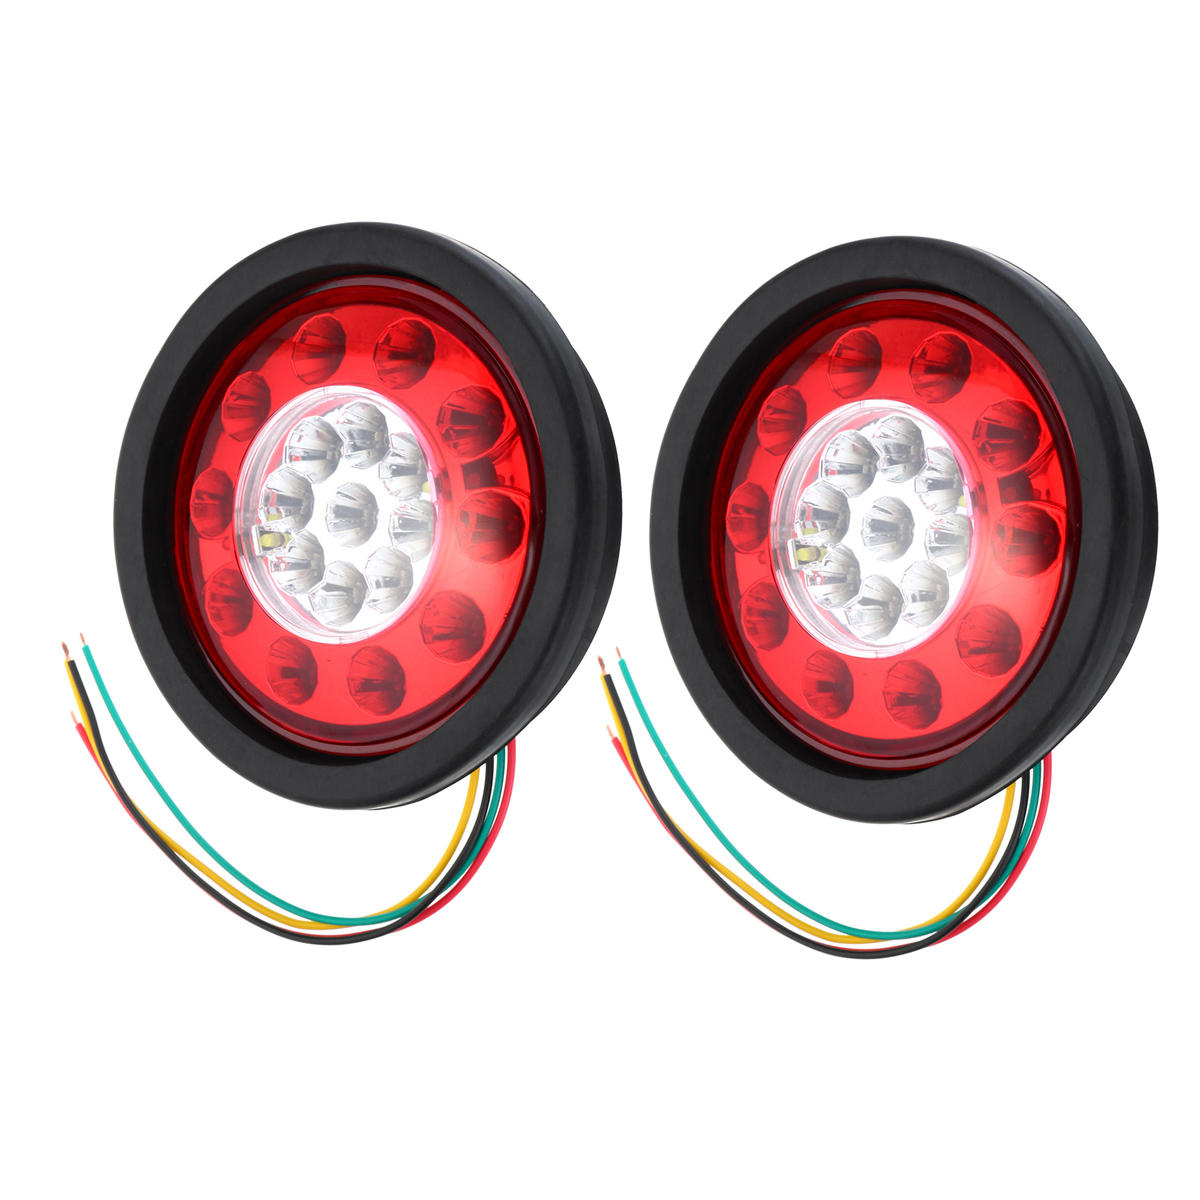 Led Truck Tail Lights >> 19 Led Truck Lorry Brake Lights Stop Turn Tail Lamp Black Rubber Turn Signal Stop Lights